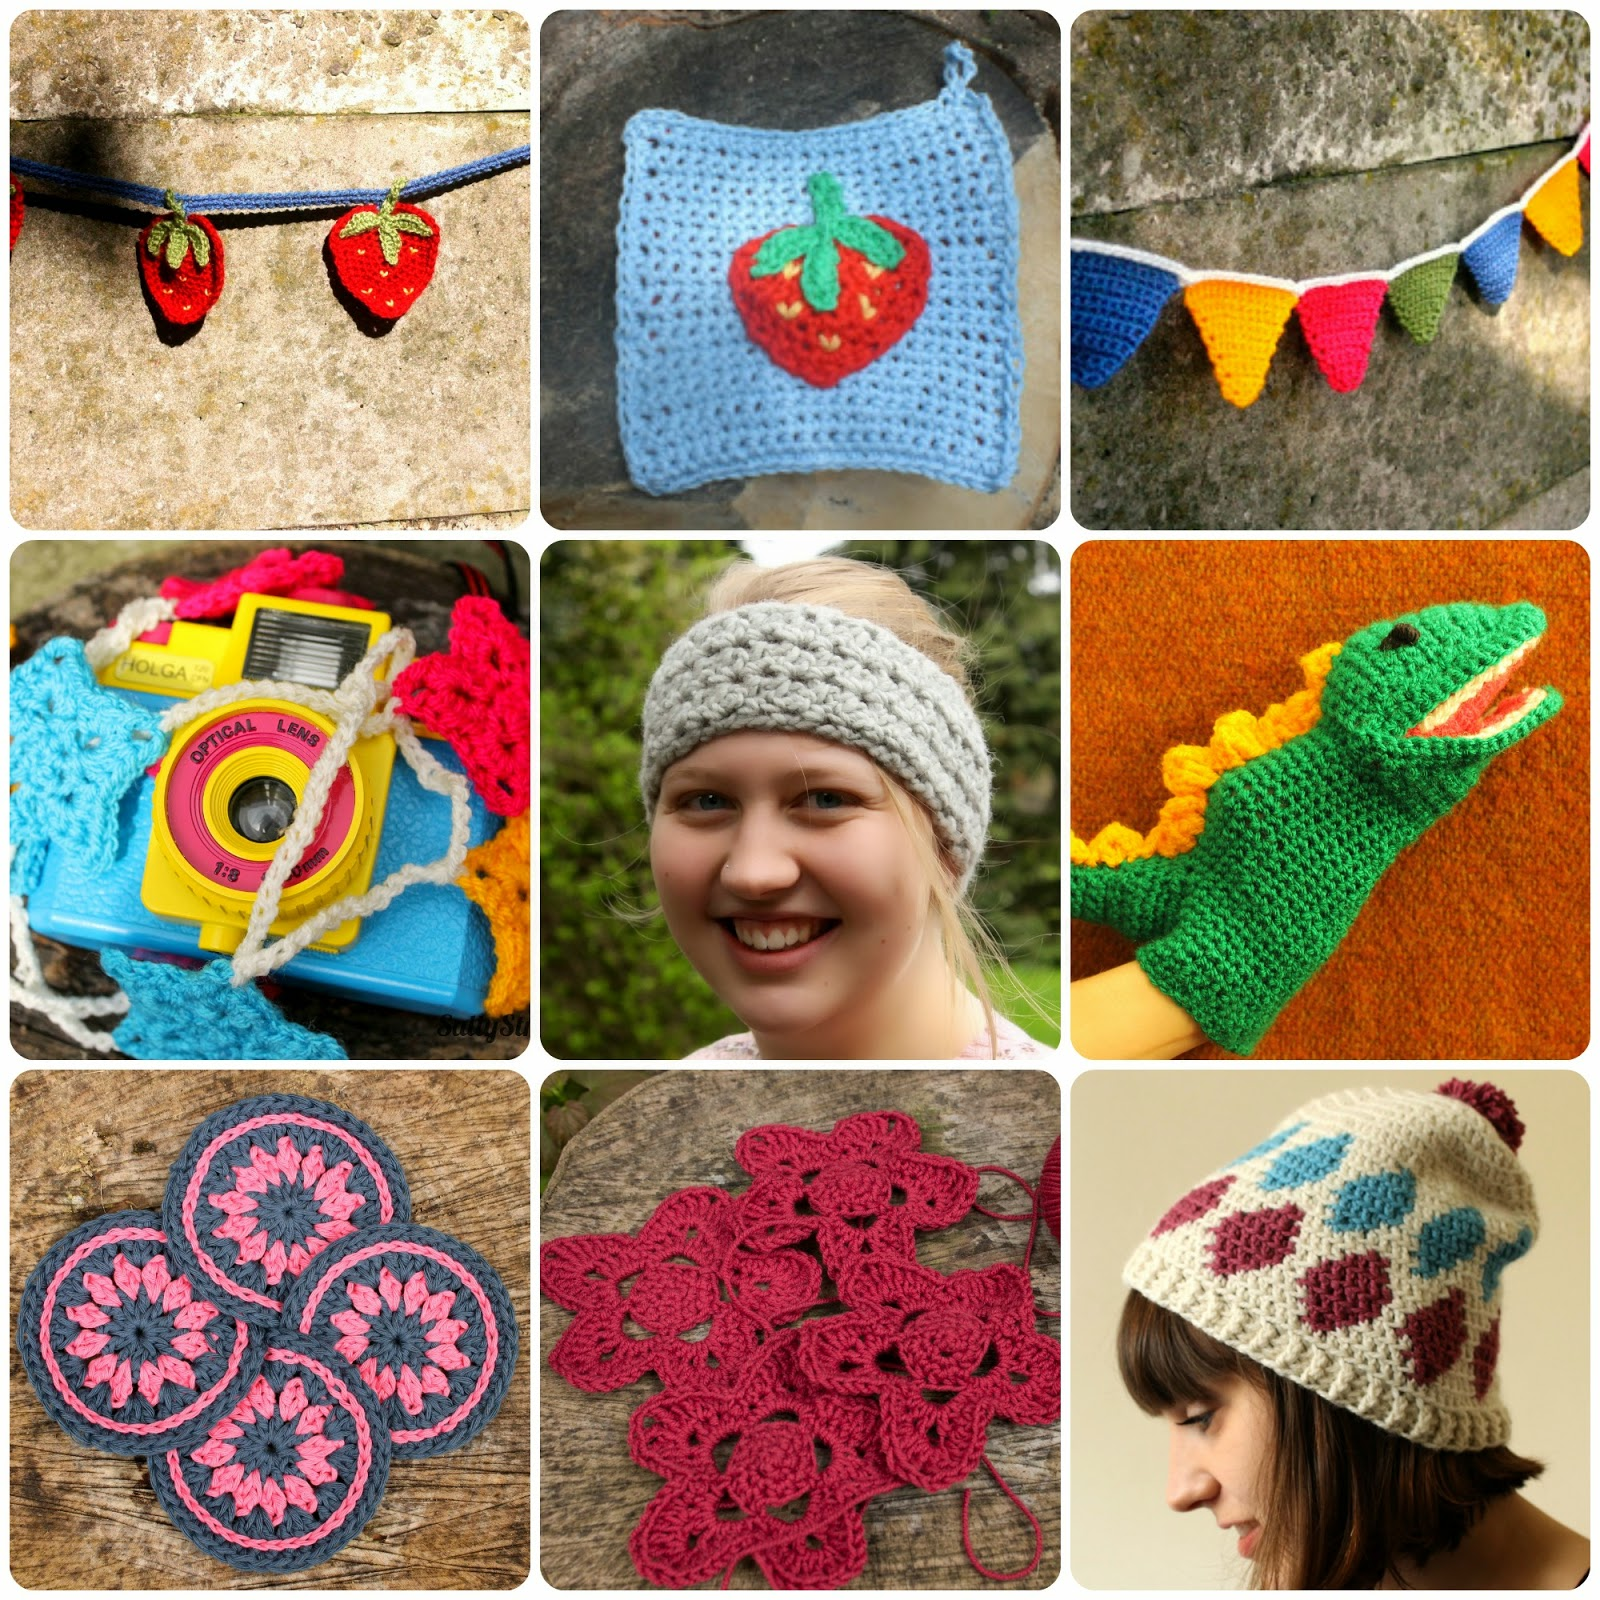 Crochet designs by SallyStrawberry